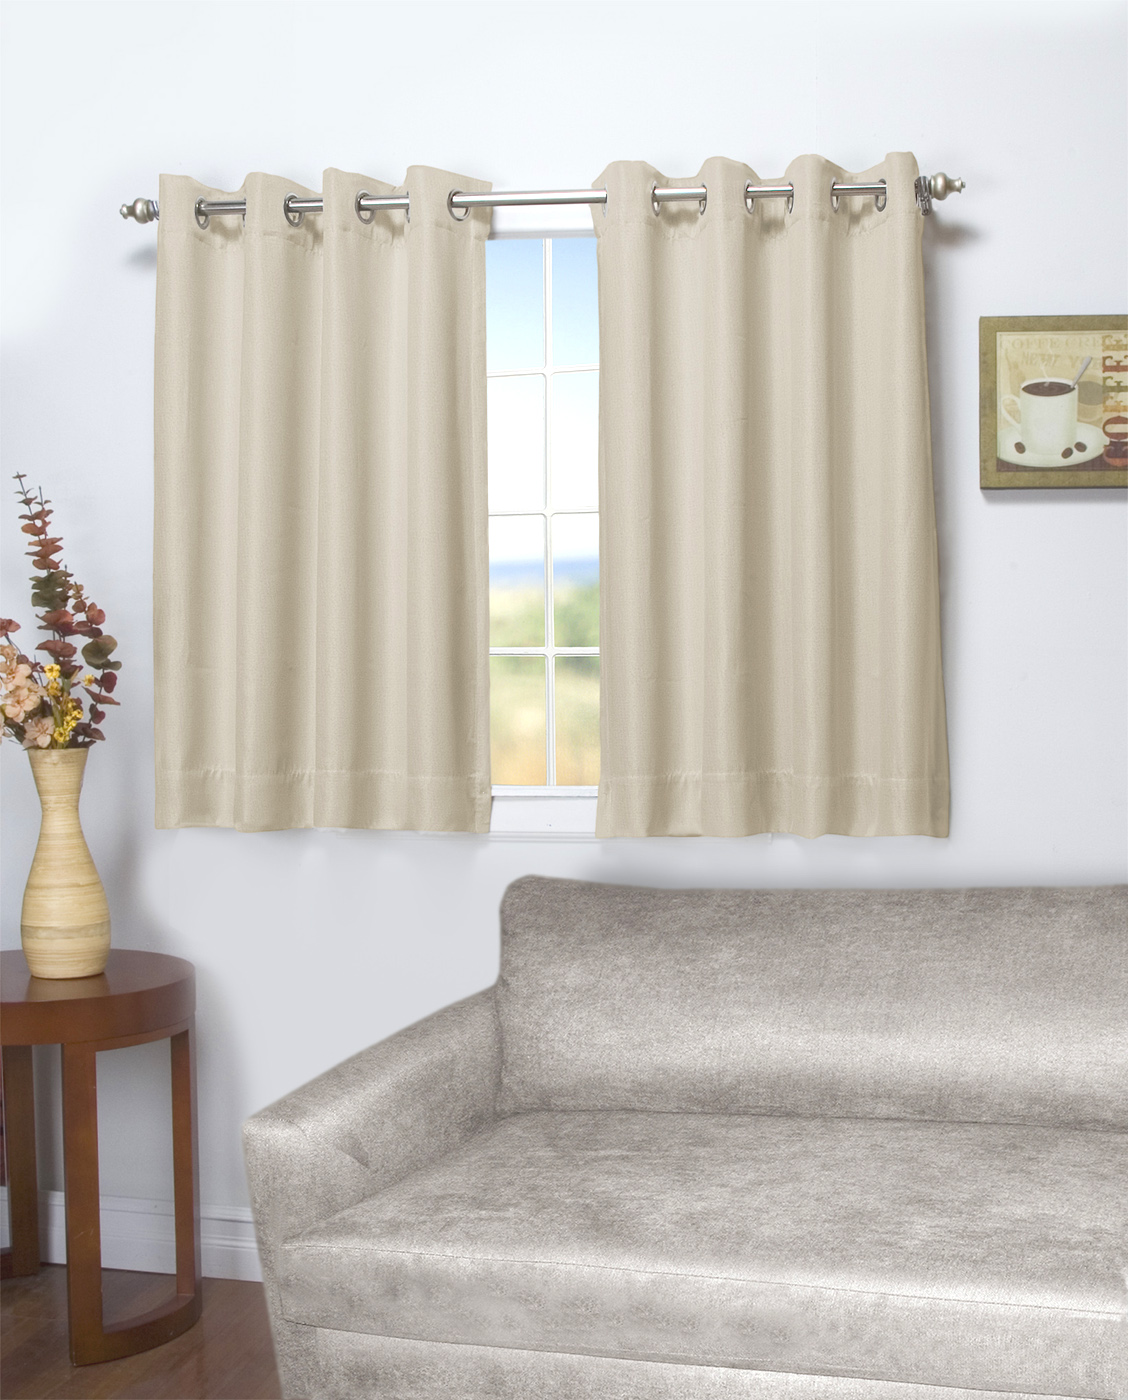 sizes with blinds wood marvelous side mini square from vinyl made horizontal graceful curtains window curtain table door walmart tiny narrow